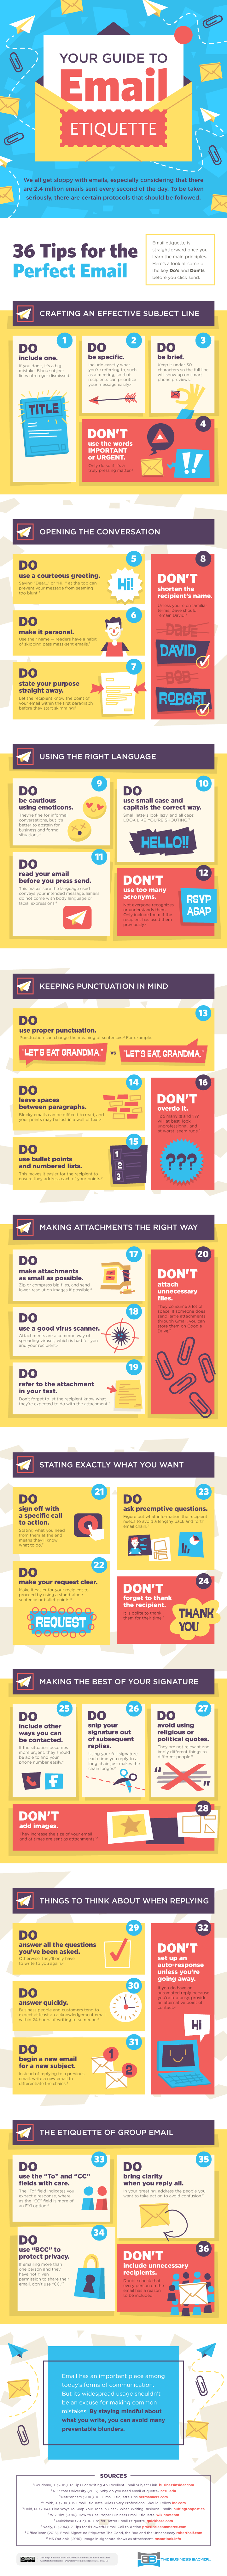 Your Guide to Email Etiquette - infographic